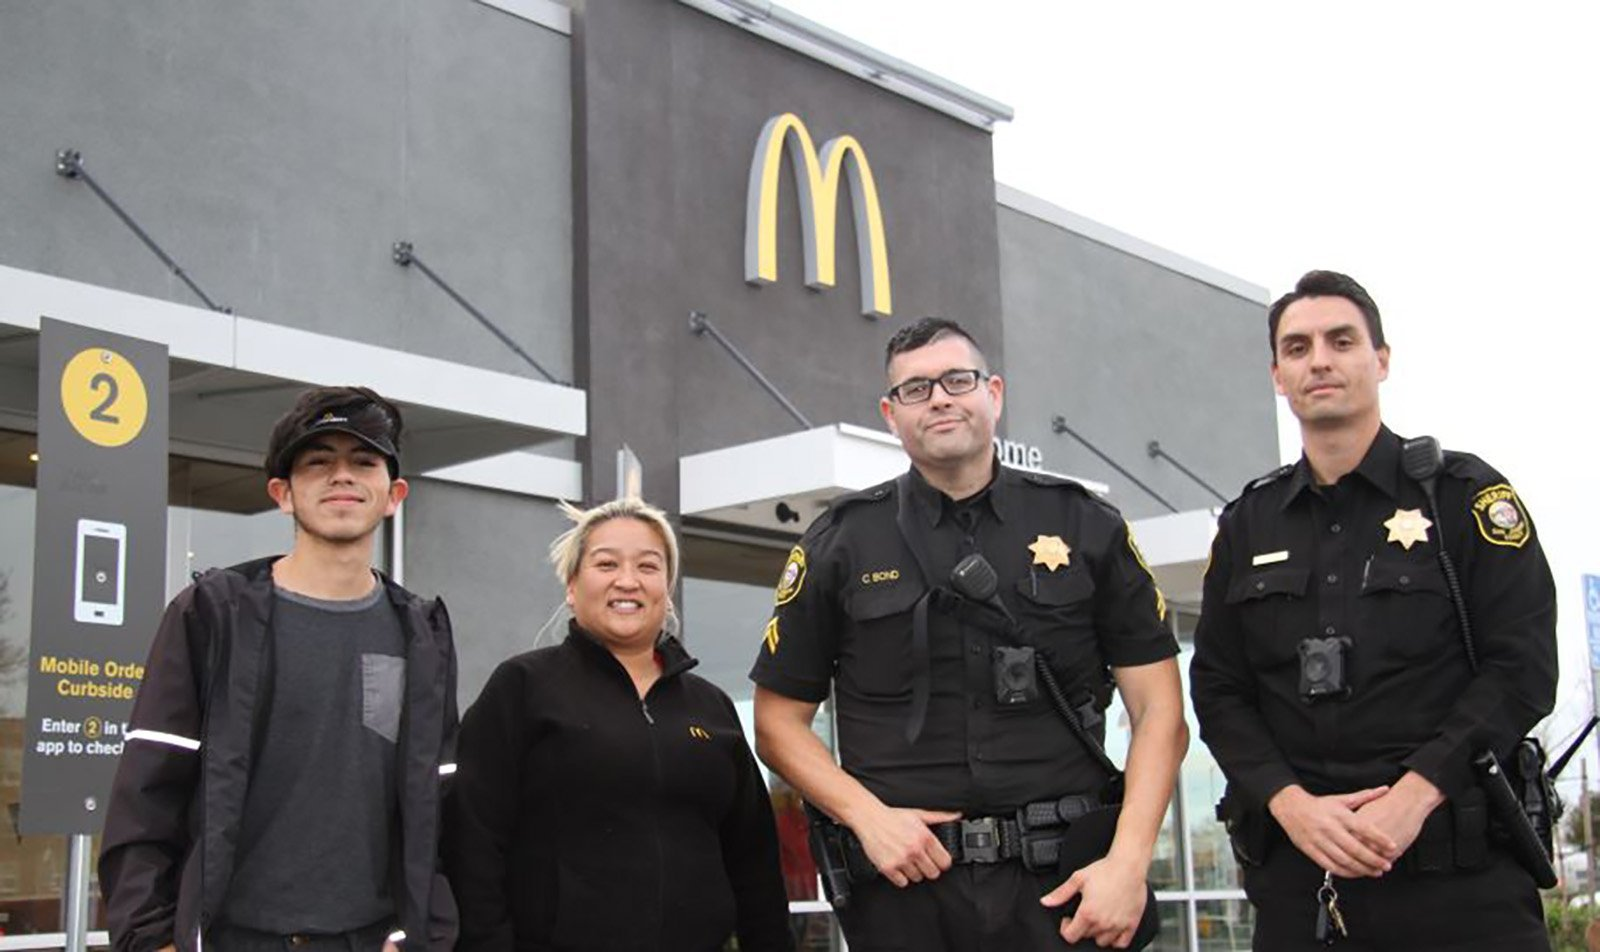 McDonalds's workers rescue woman who mouths 'help me' '